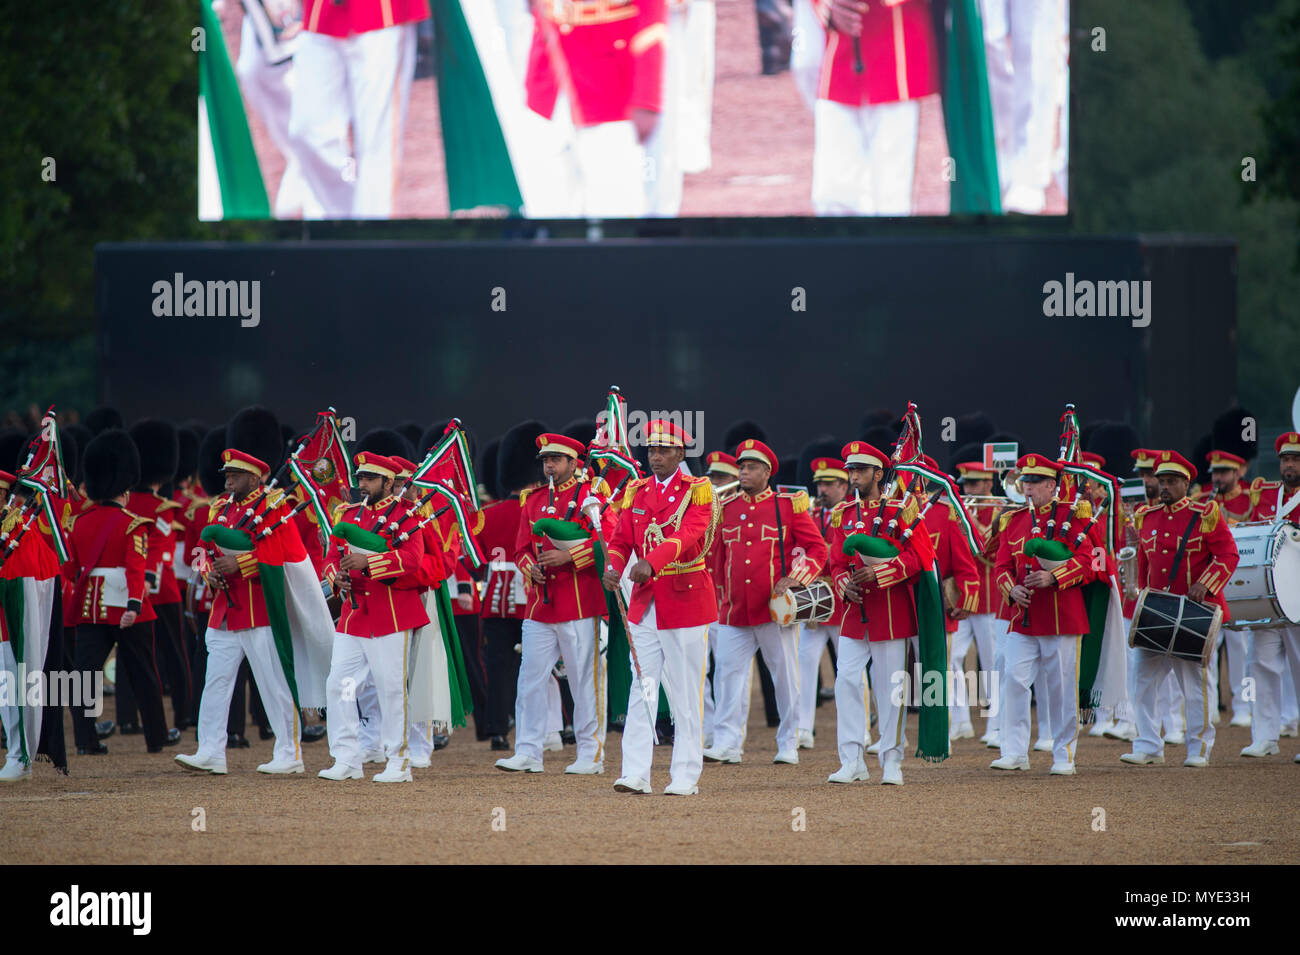 Horse Guards, London, UK. 6 June, 2018. The Band & Pipes of the United Arab Emirates join the Massed Bands of the Household Division on Horse Guards Parade in the annual celebration that is the Household Division's Beating Retreat in the presence of Minister for the Armed Forces, Mark Lancaster MP who takes the salute. Credit: Malcolm Park editorial/Alamy Live News - Stock Image